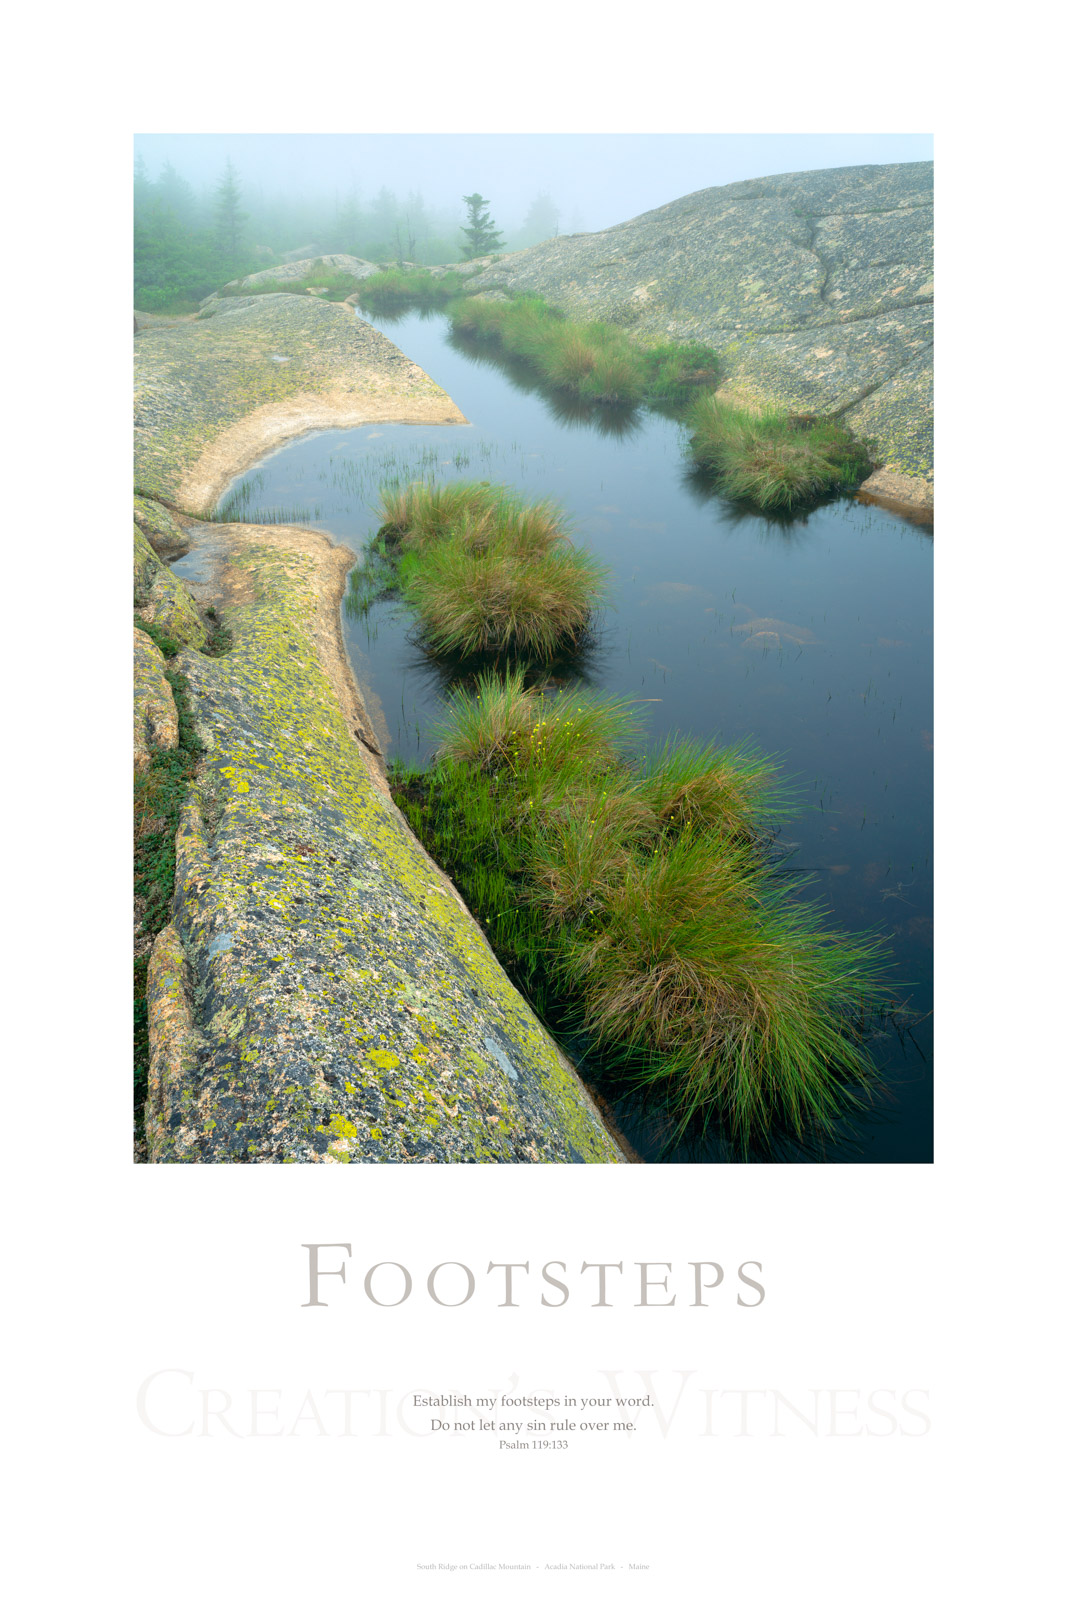 Establish my footsteps in your word.     Do not let any sin rule over me. Psalm 119:133